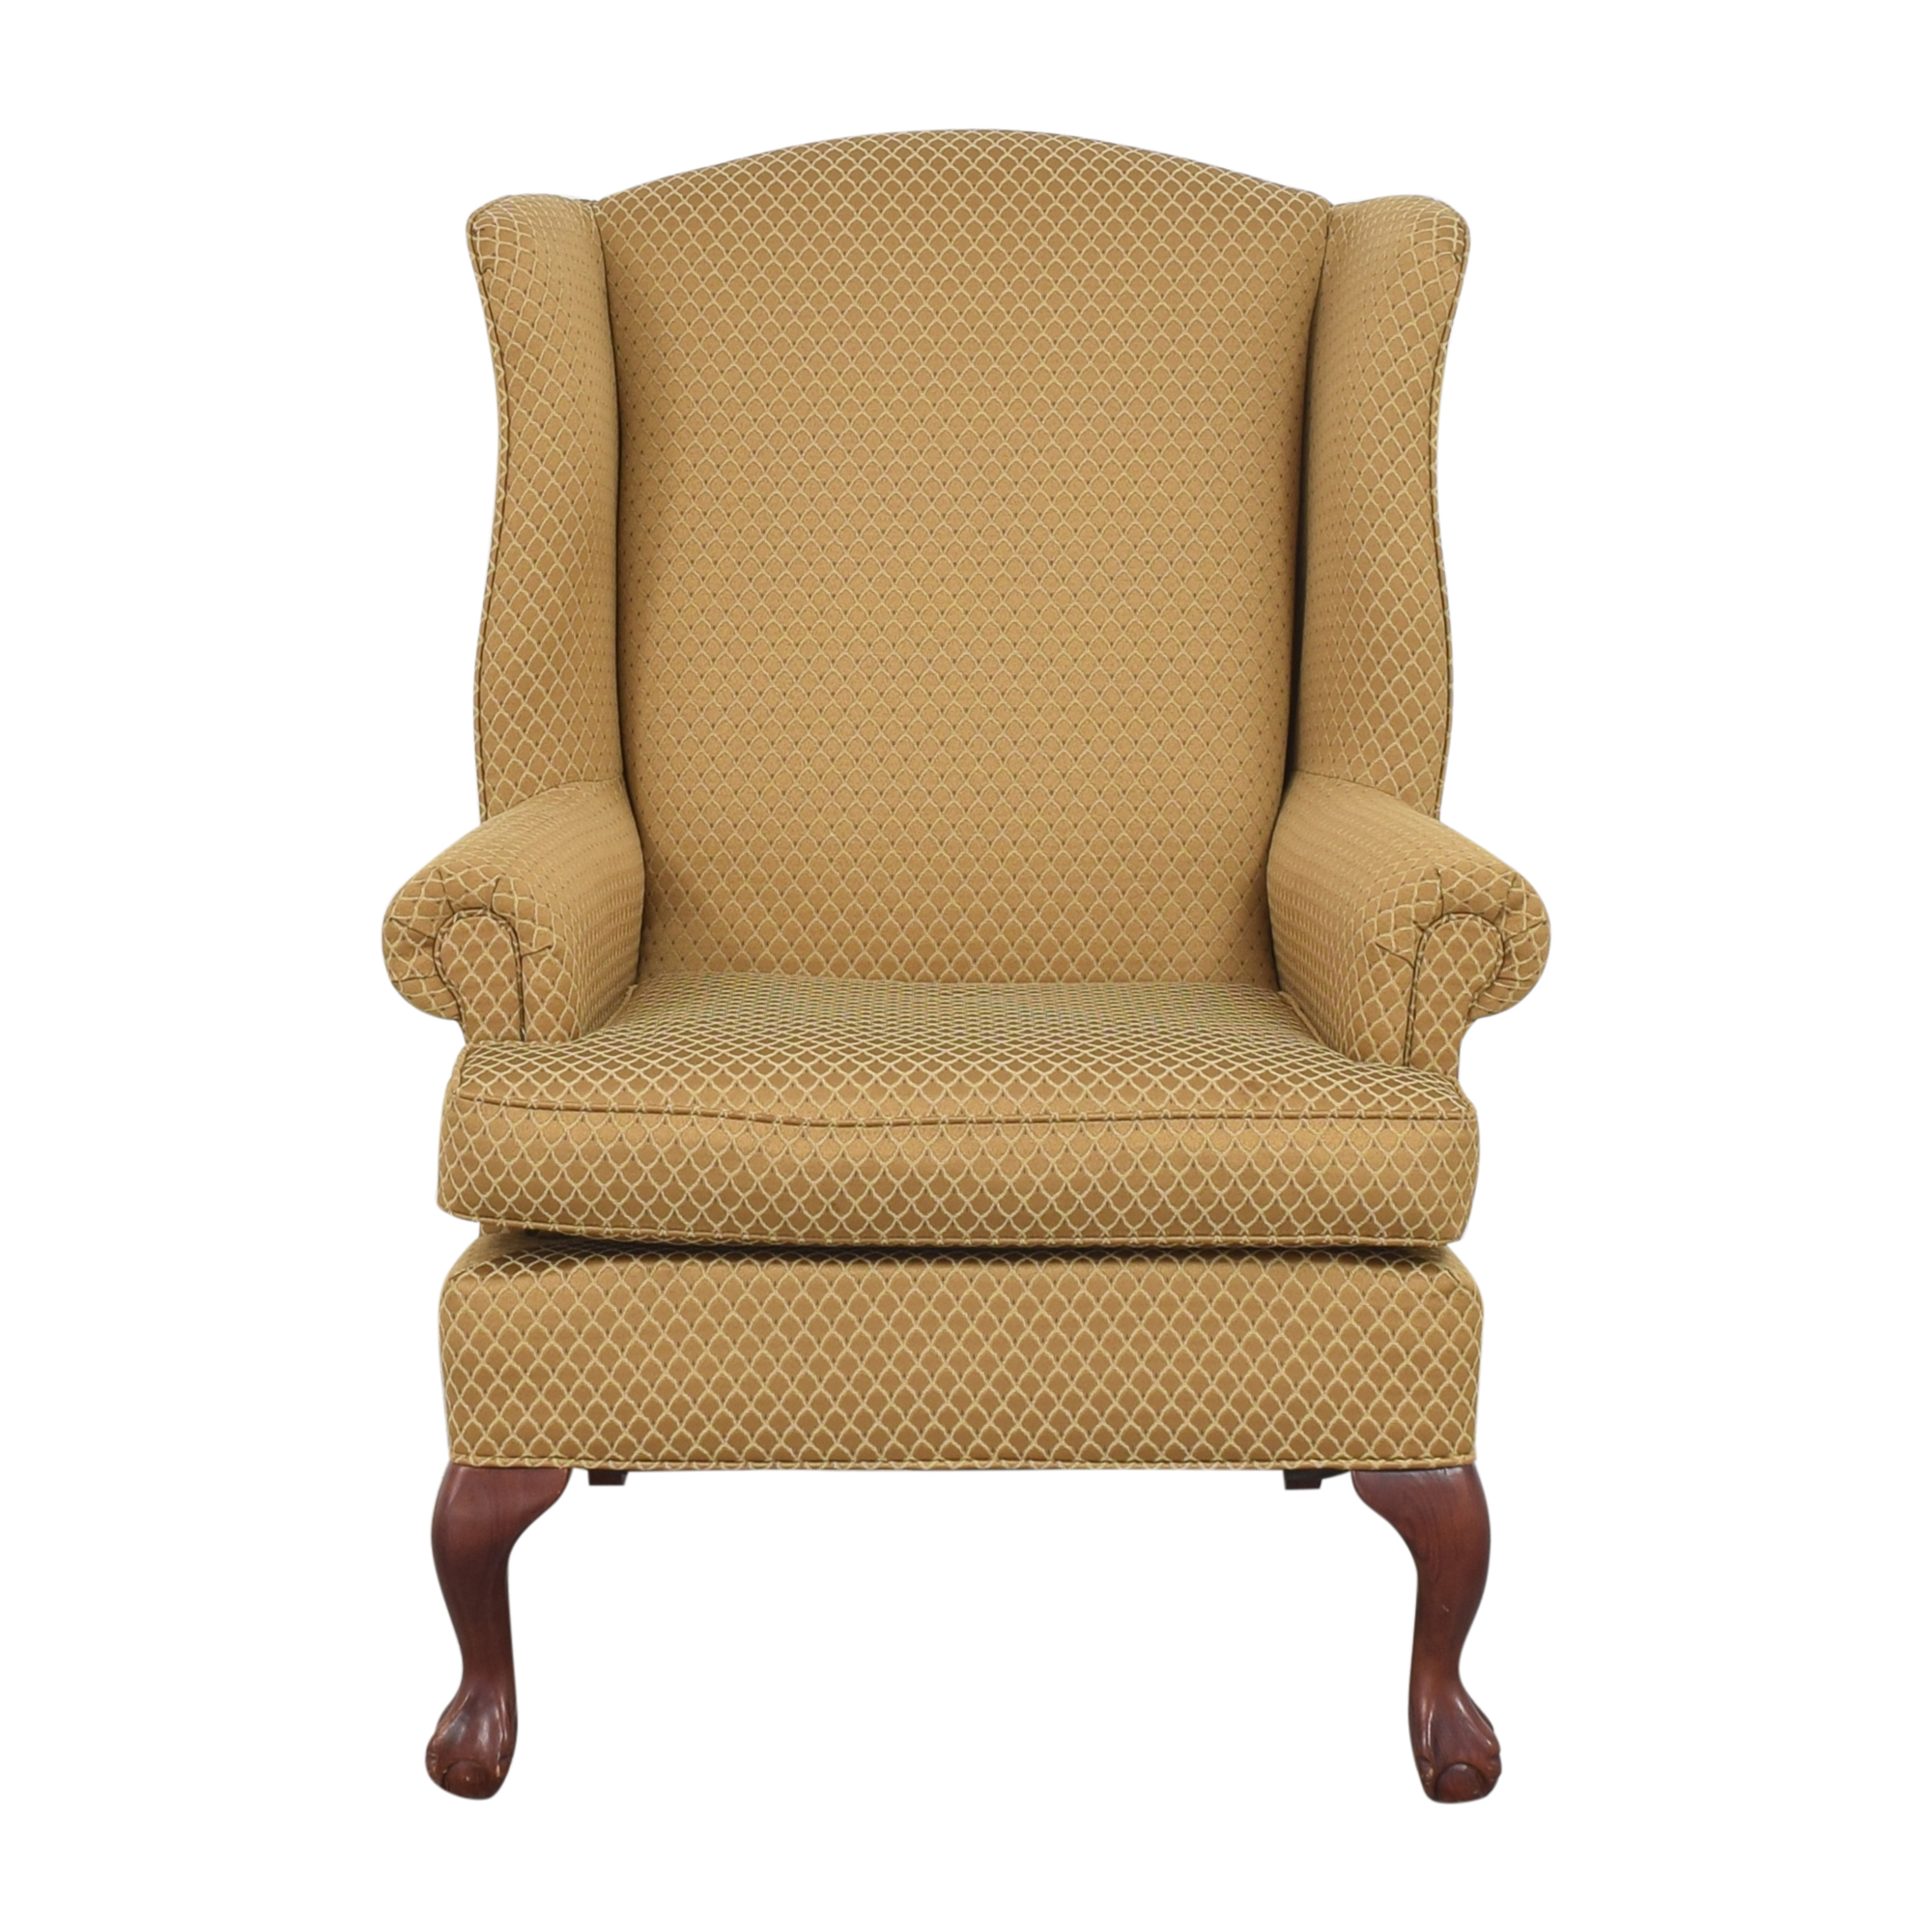 Best Chairs Best Chairs Wingback Chair pa